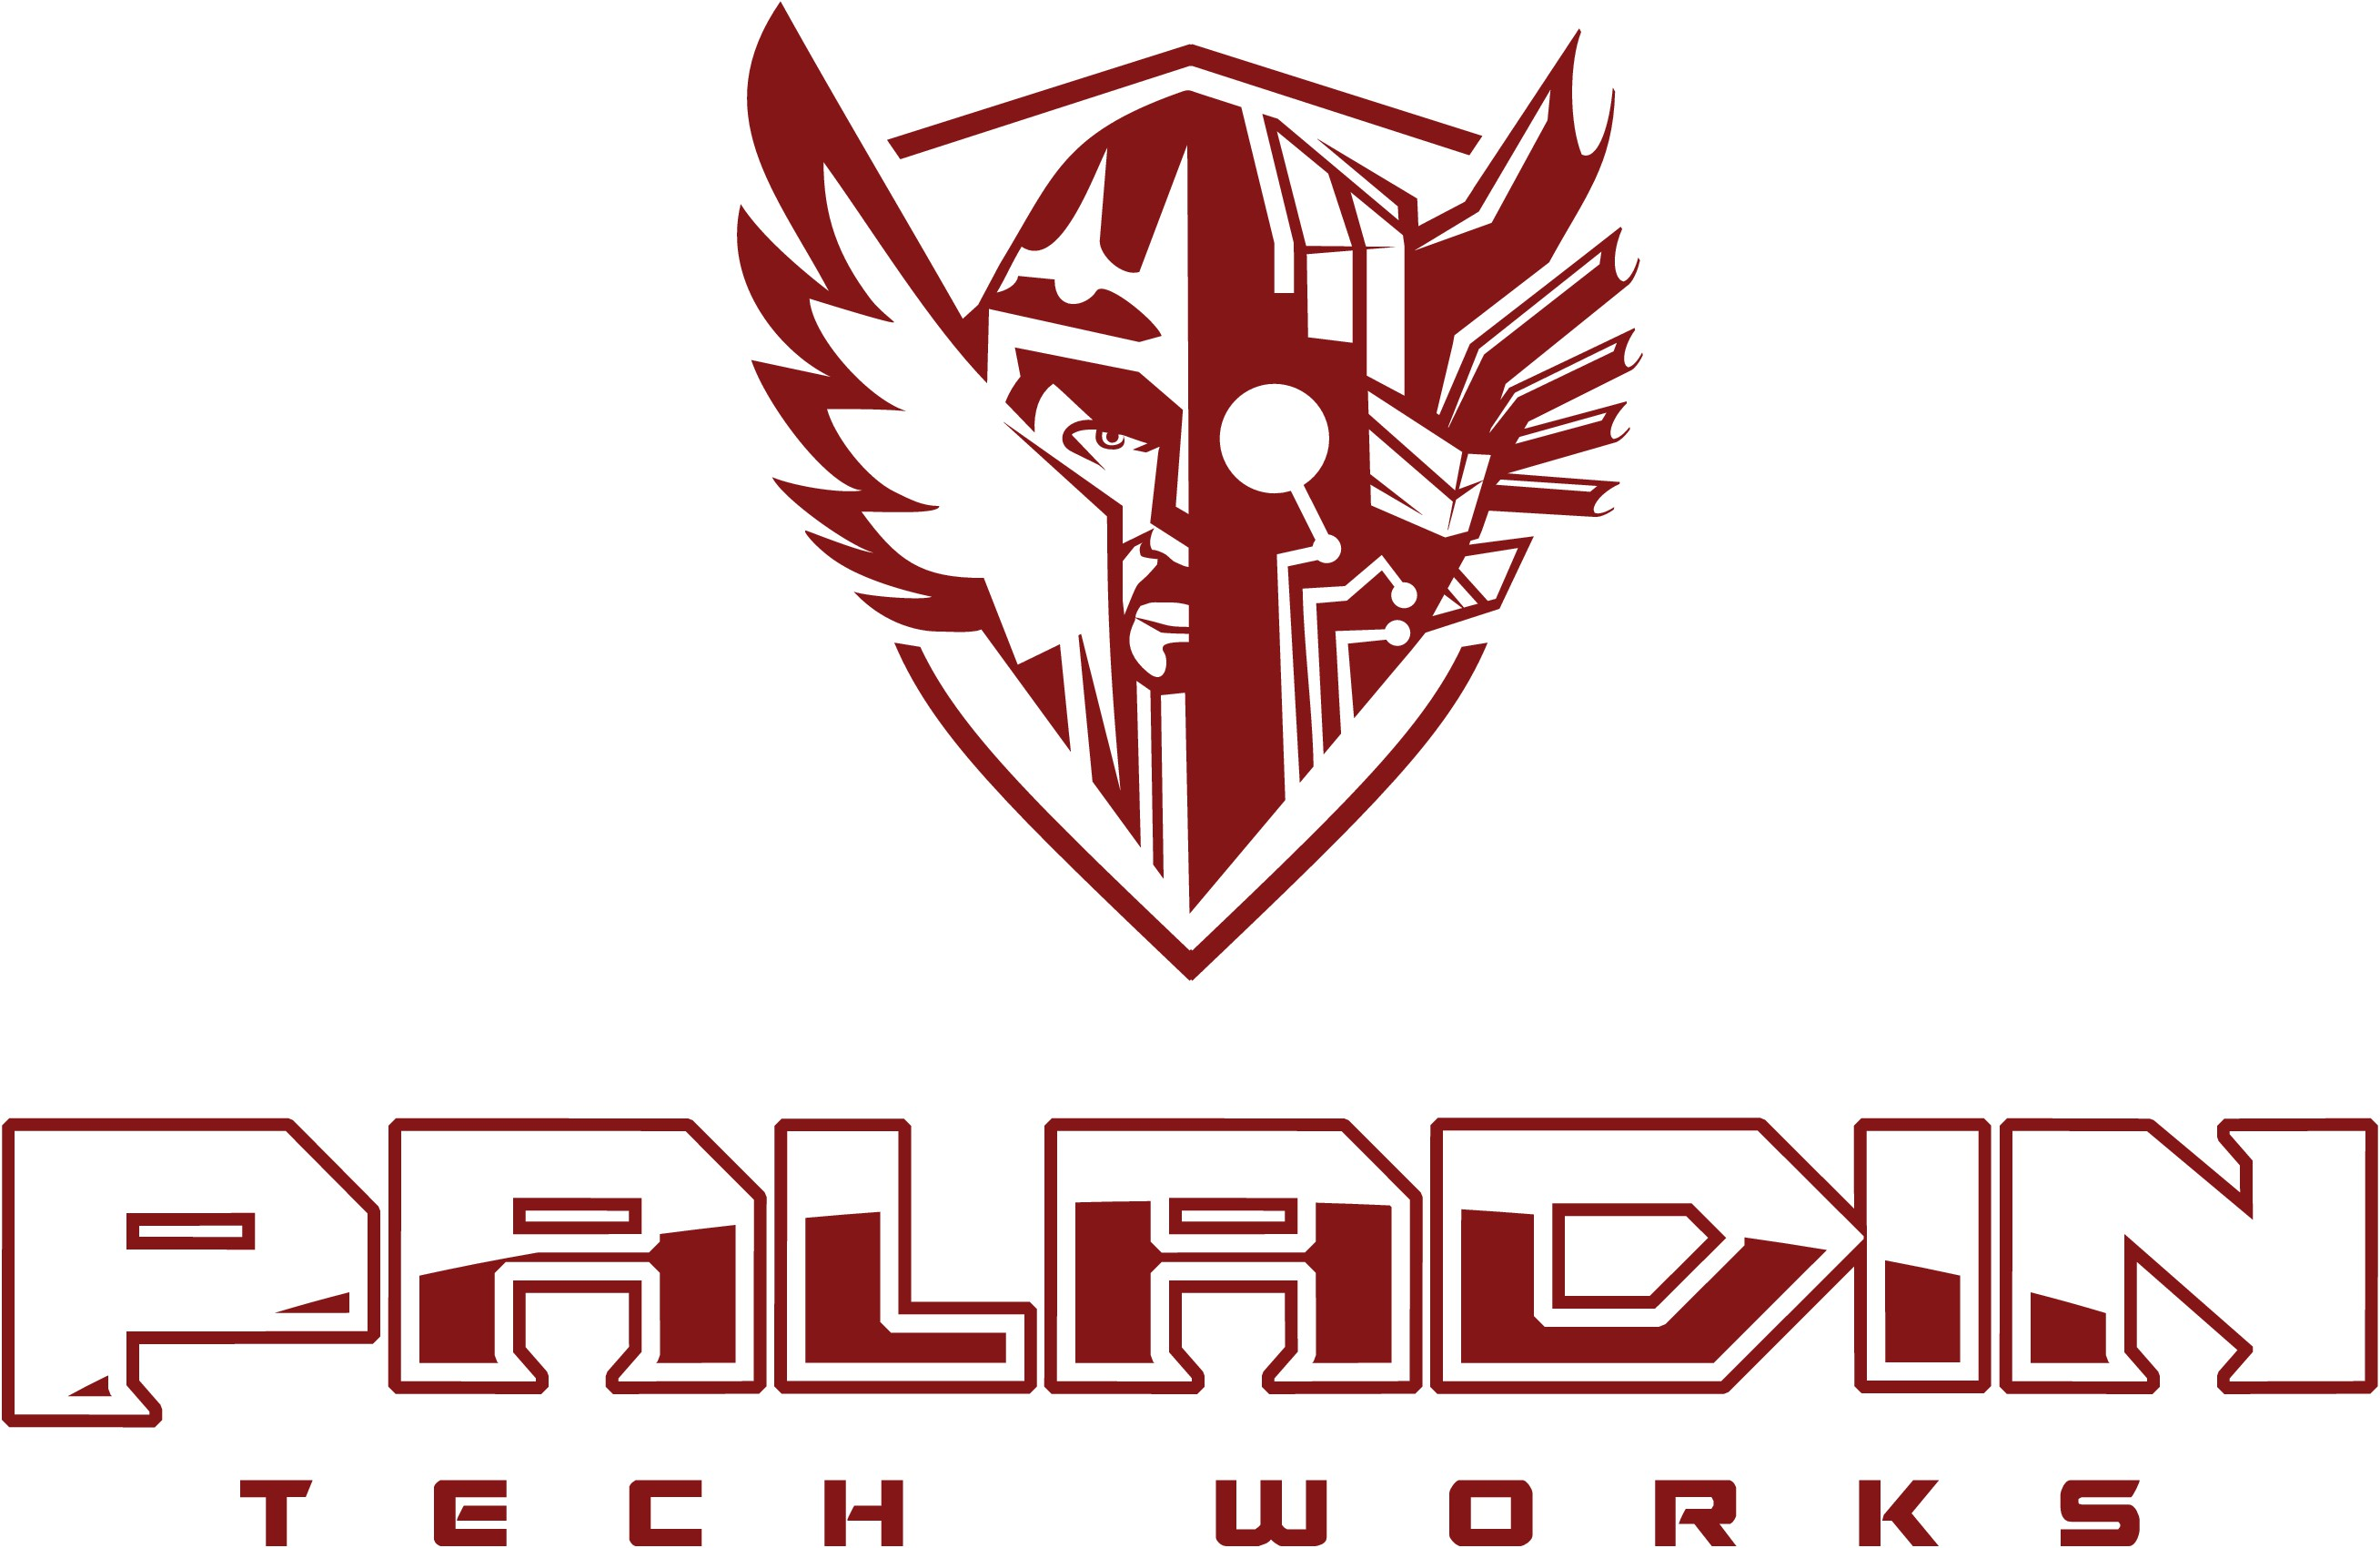 Create an epic logo for Paladin Tech Works